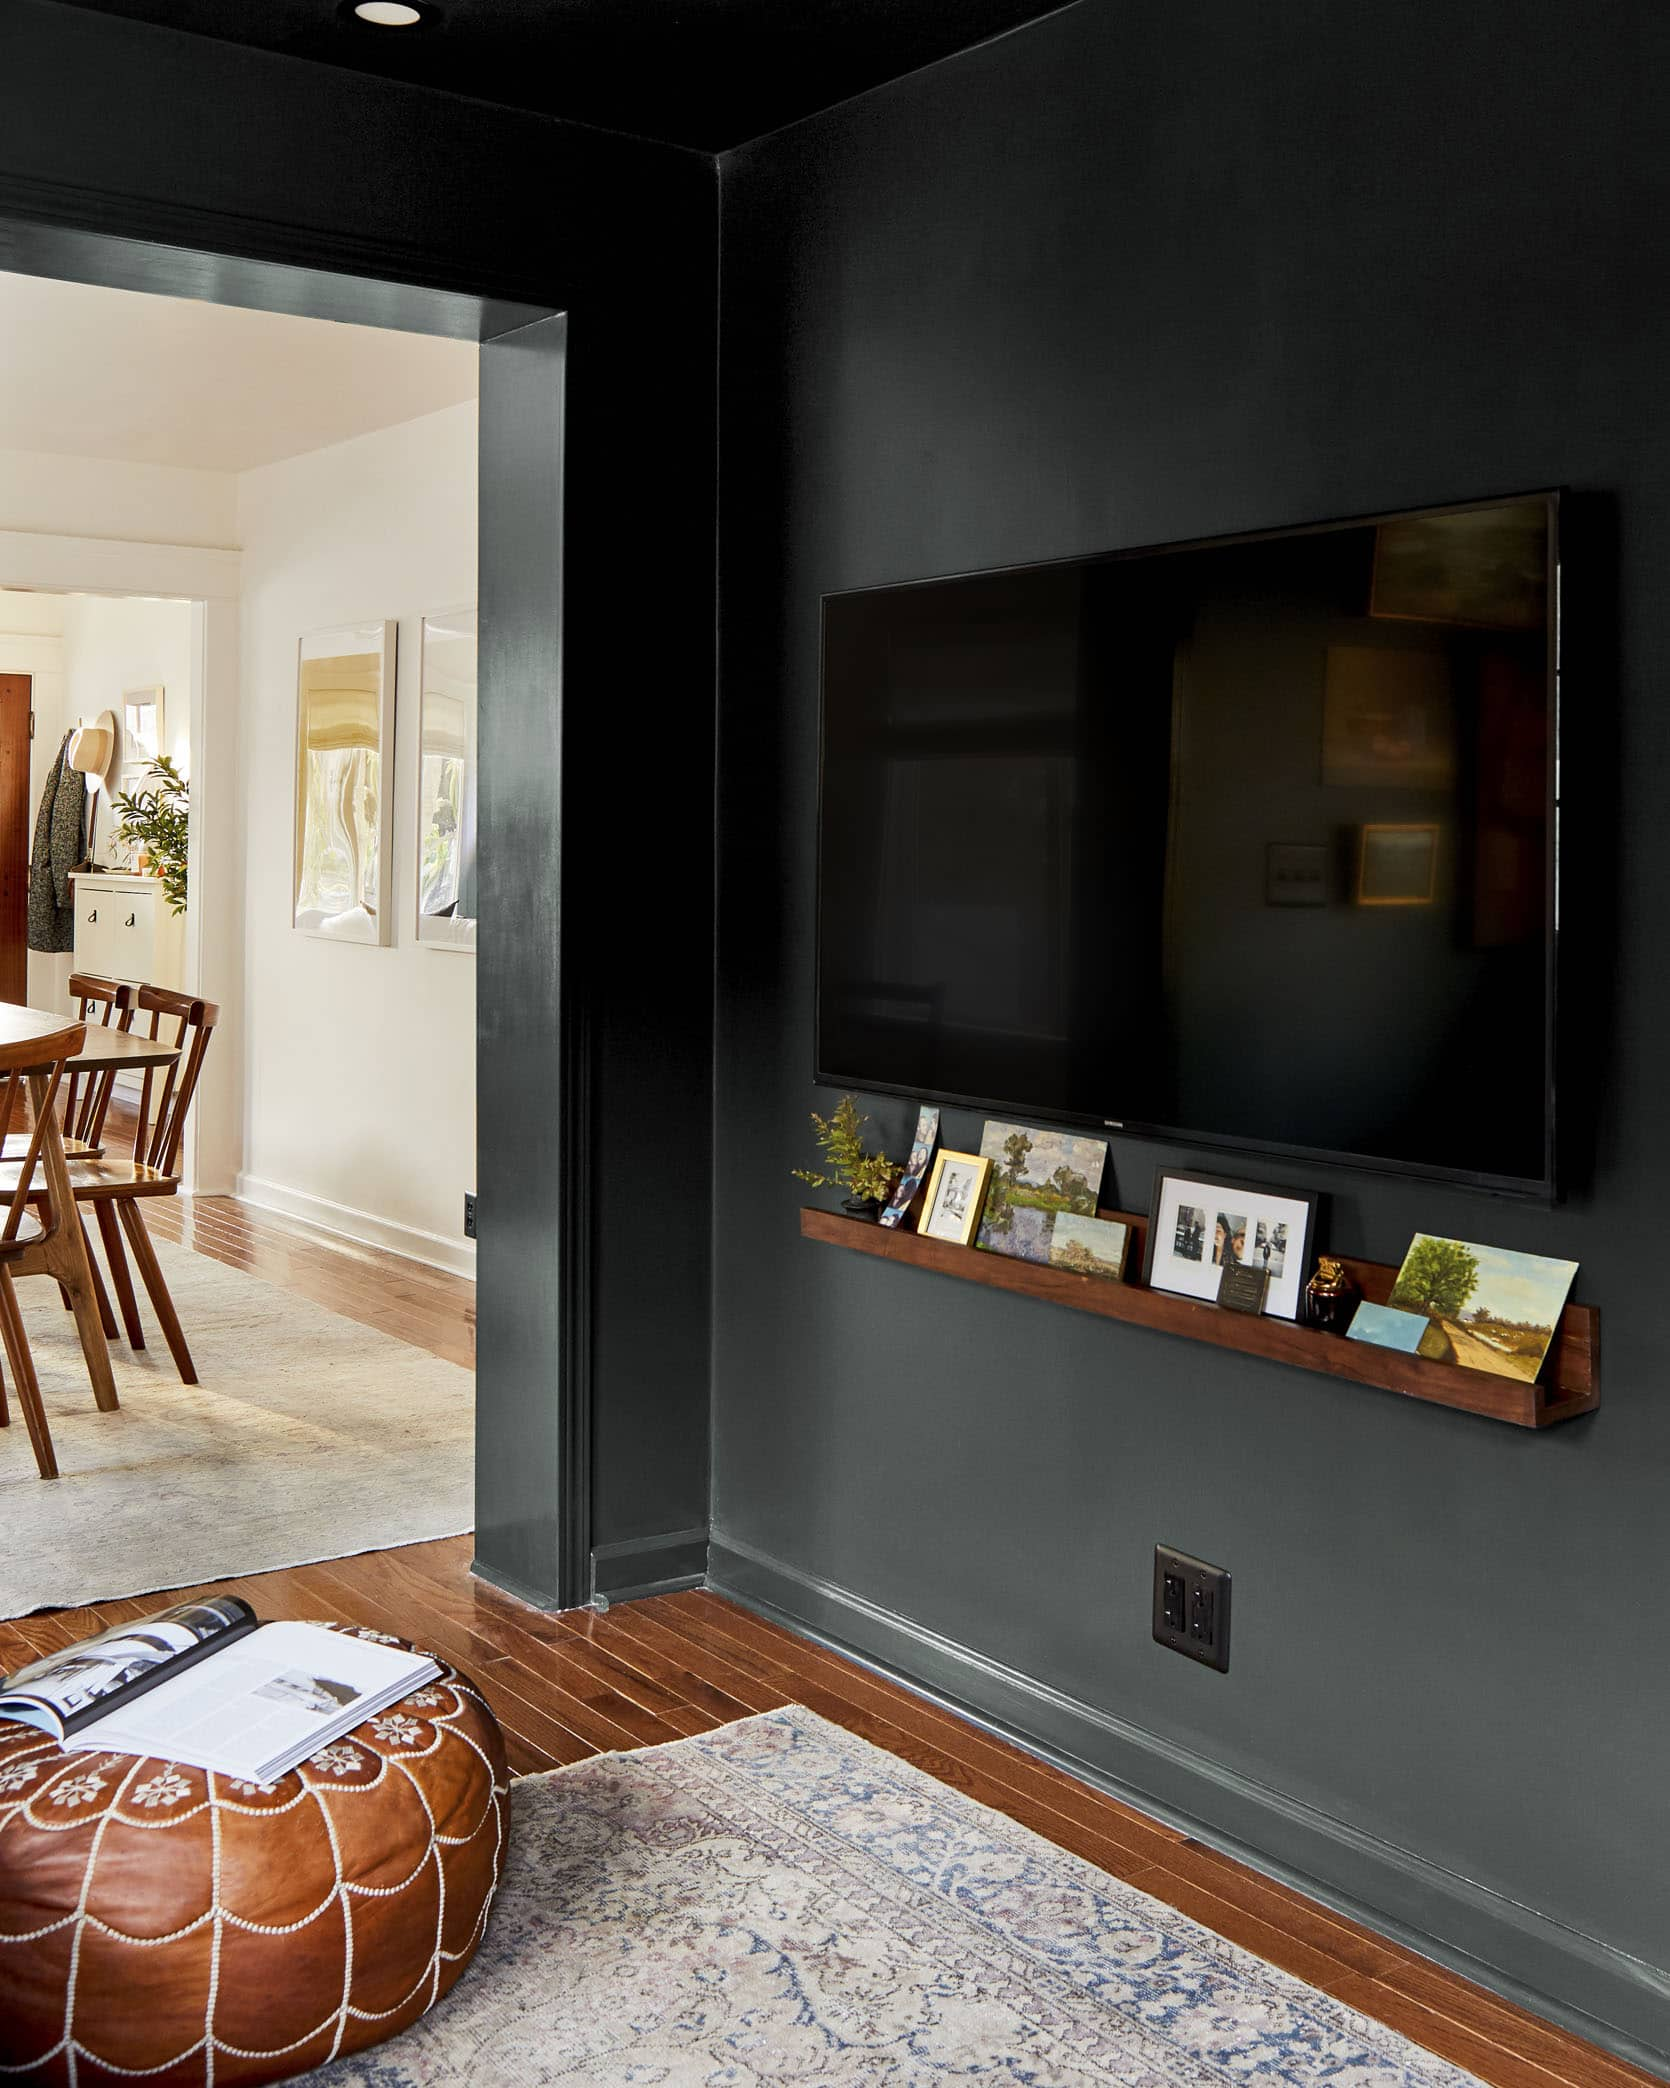 How To Make Your Smallest Room The Coziest Room In Your Home Sara S Tv Room Reveal Emily Henderson